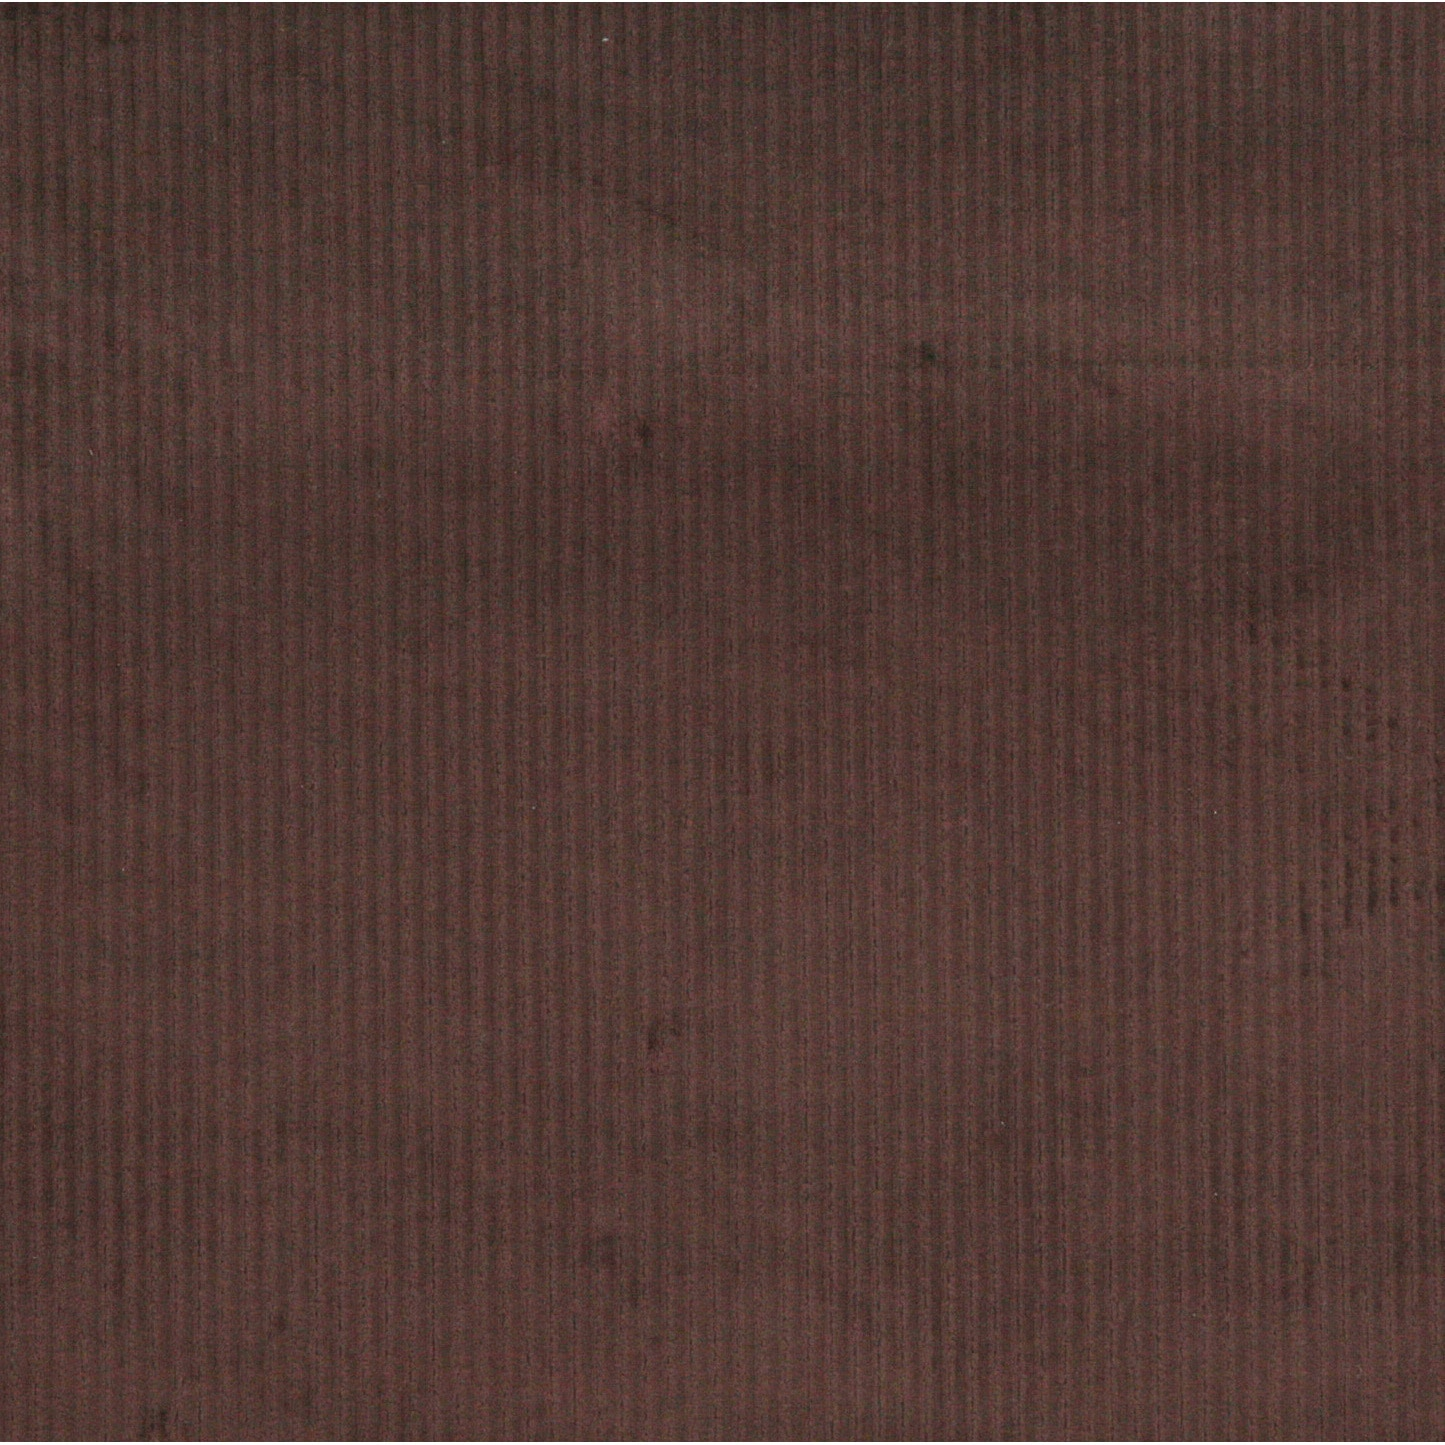 Shop Dark Brown Corduroy Striped Velvet Upholstery Fabric Free